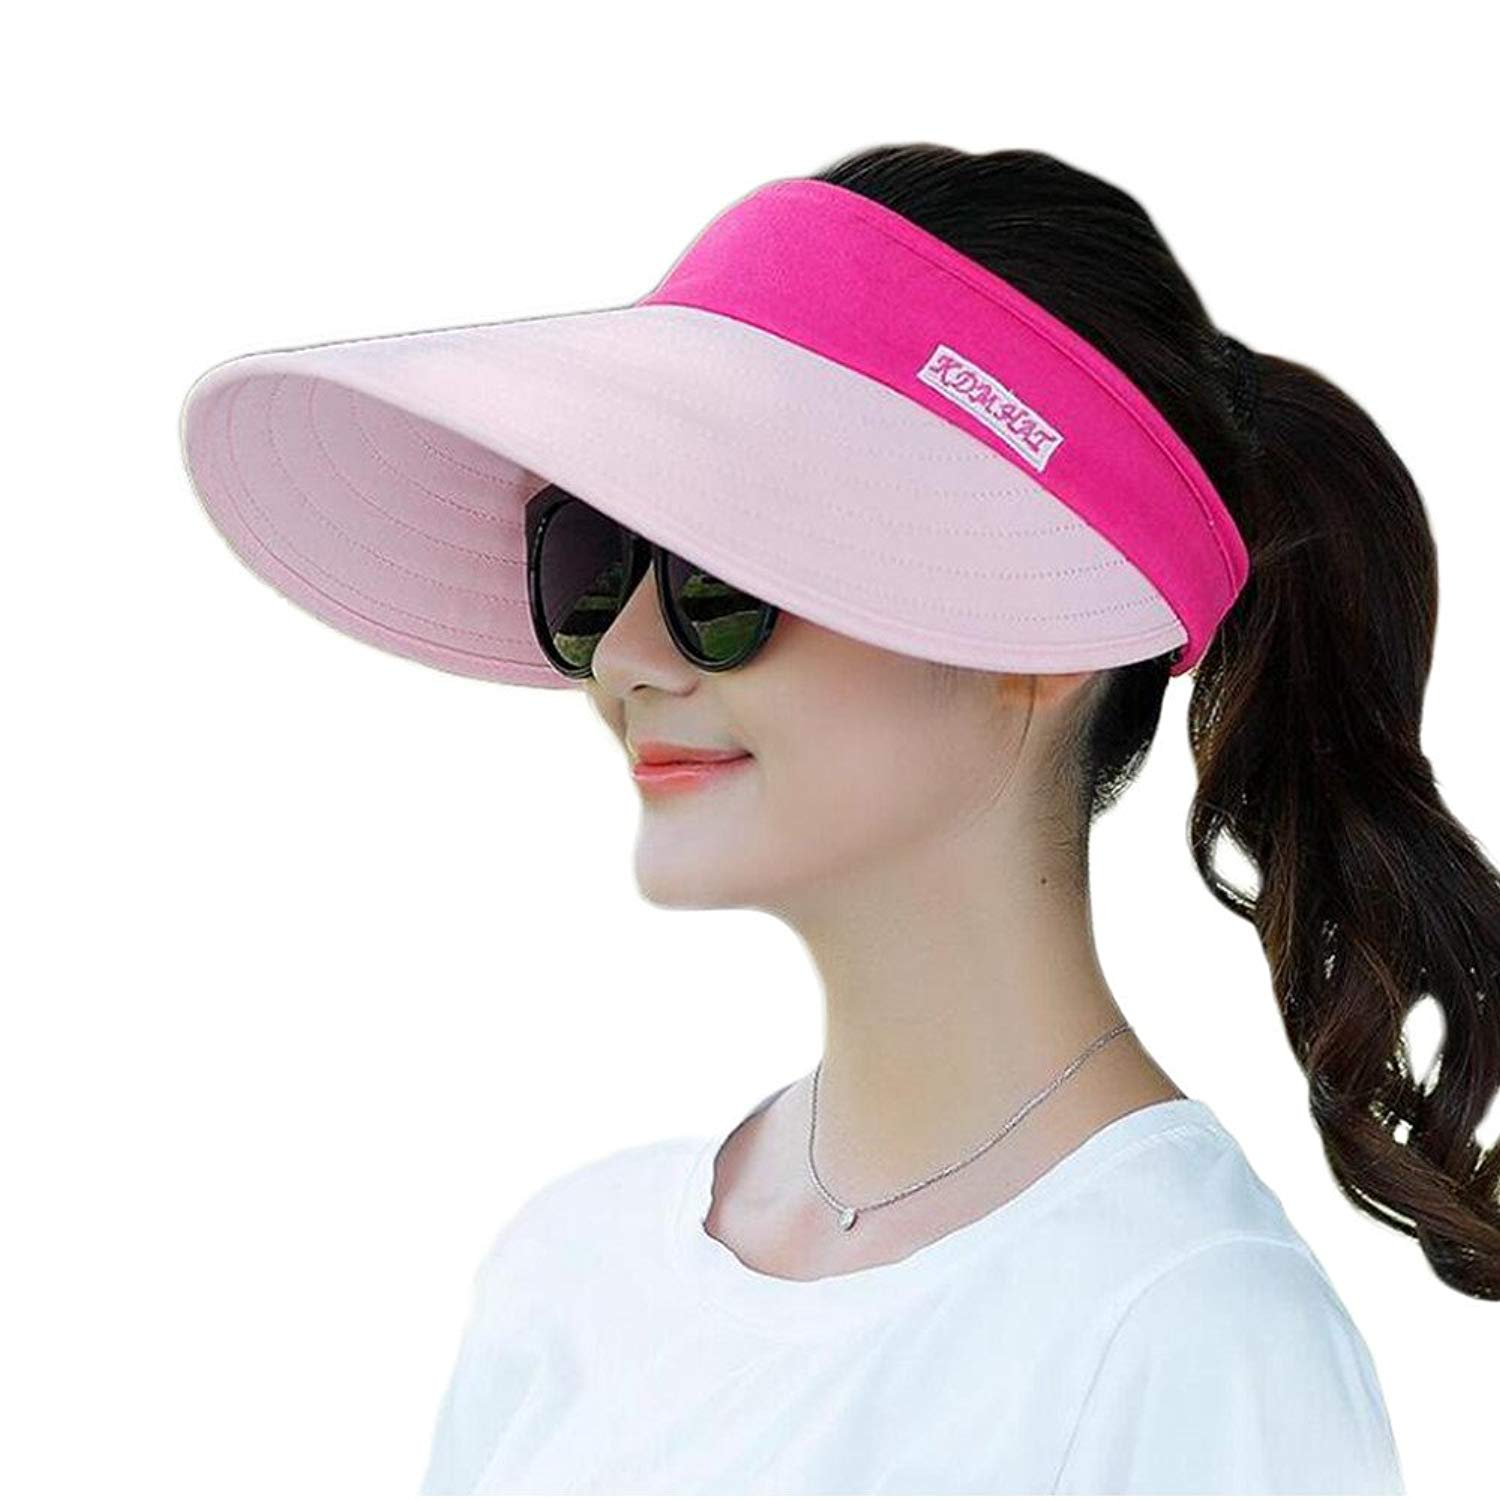 0ef37dd42ce Get Quotations · FuzzyGreen Large Brim Sun Hat, Summer UV Protection Beach  Sun Hat Adjustable Packable Packable Cap